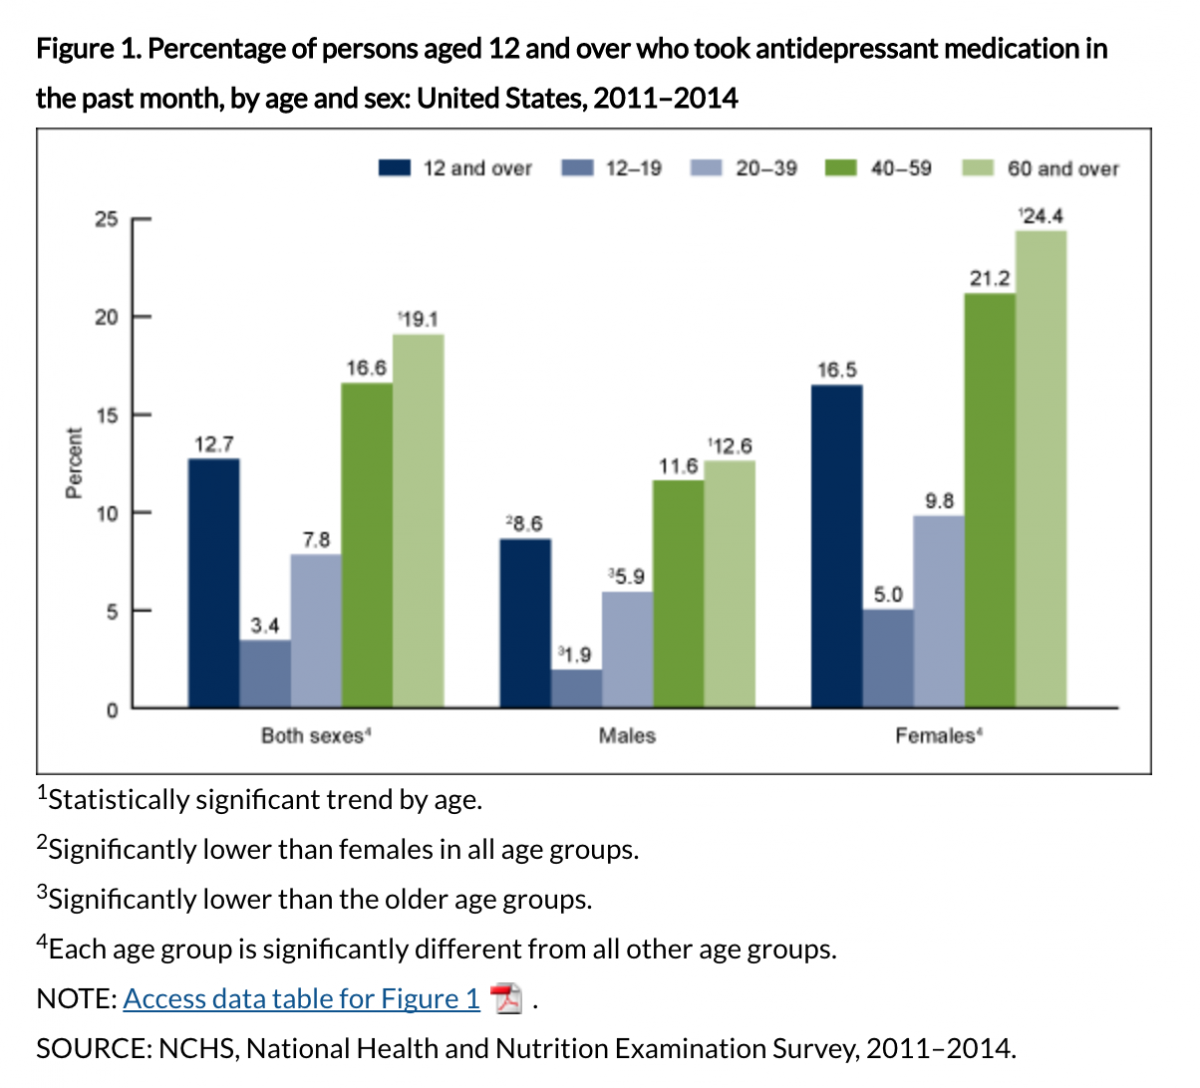 Anti-Depressant use in the United States, 2011-2014 from NCHS